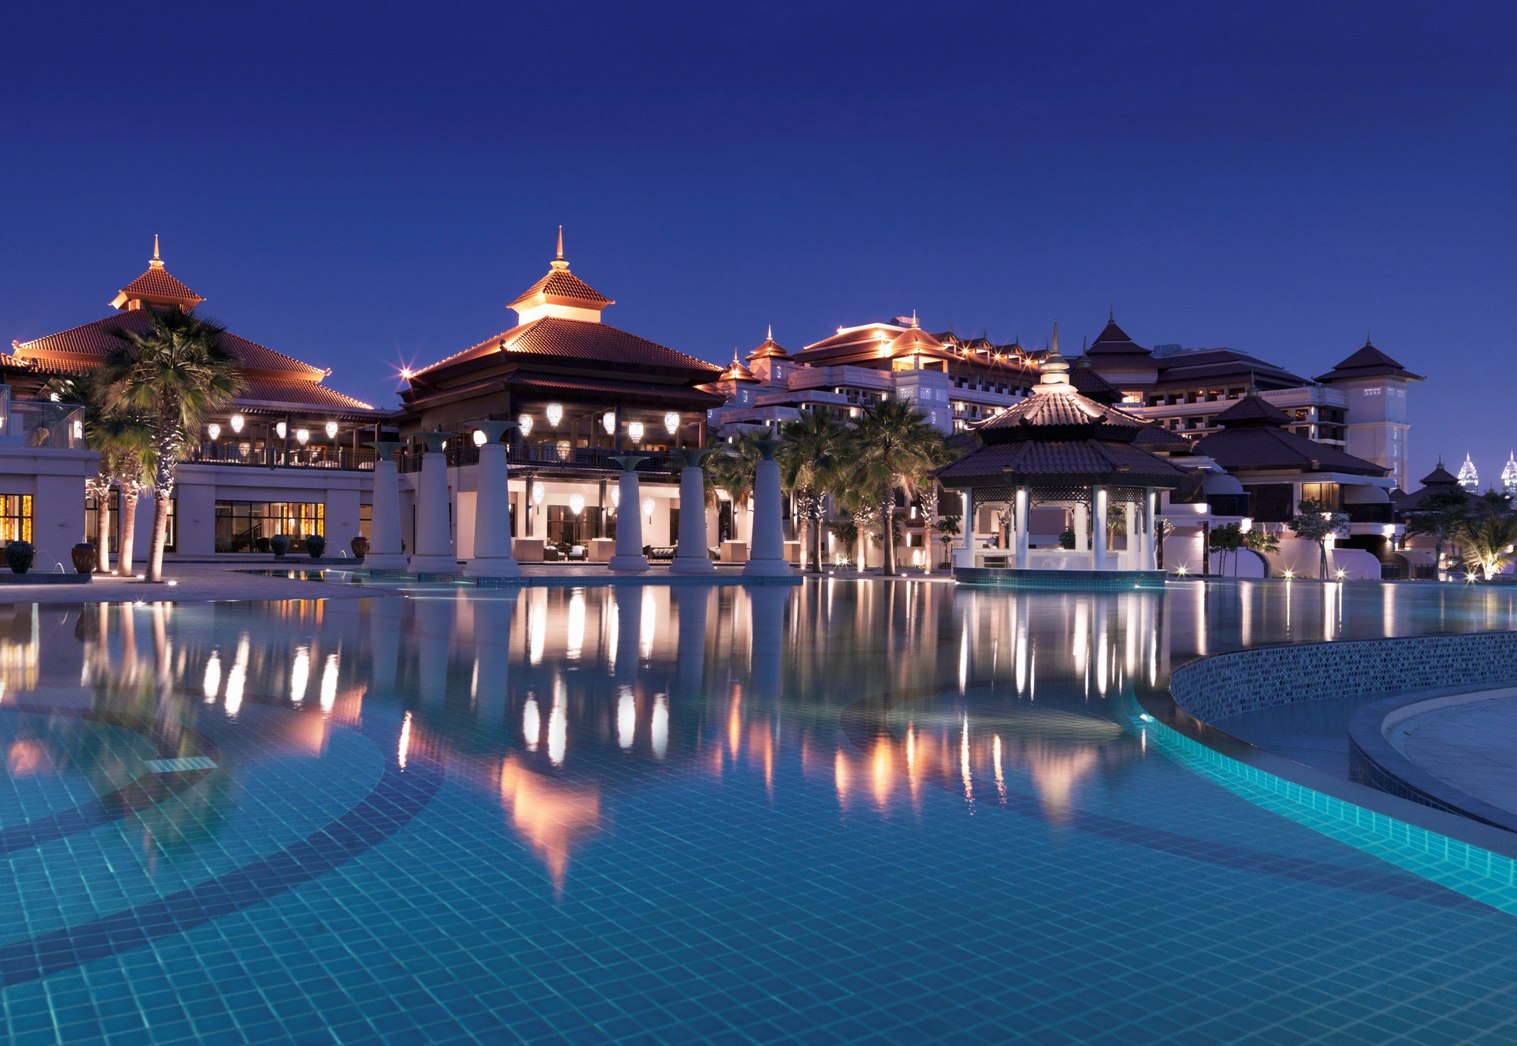 The Anantara by night.